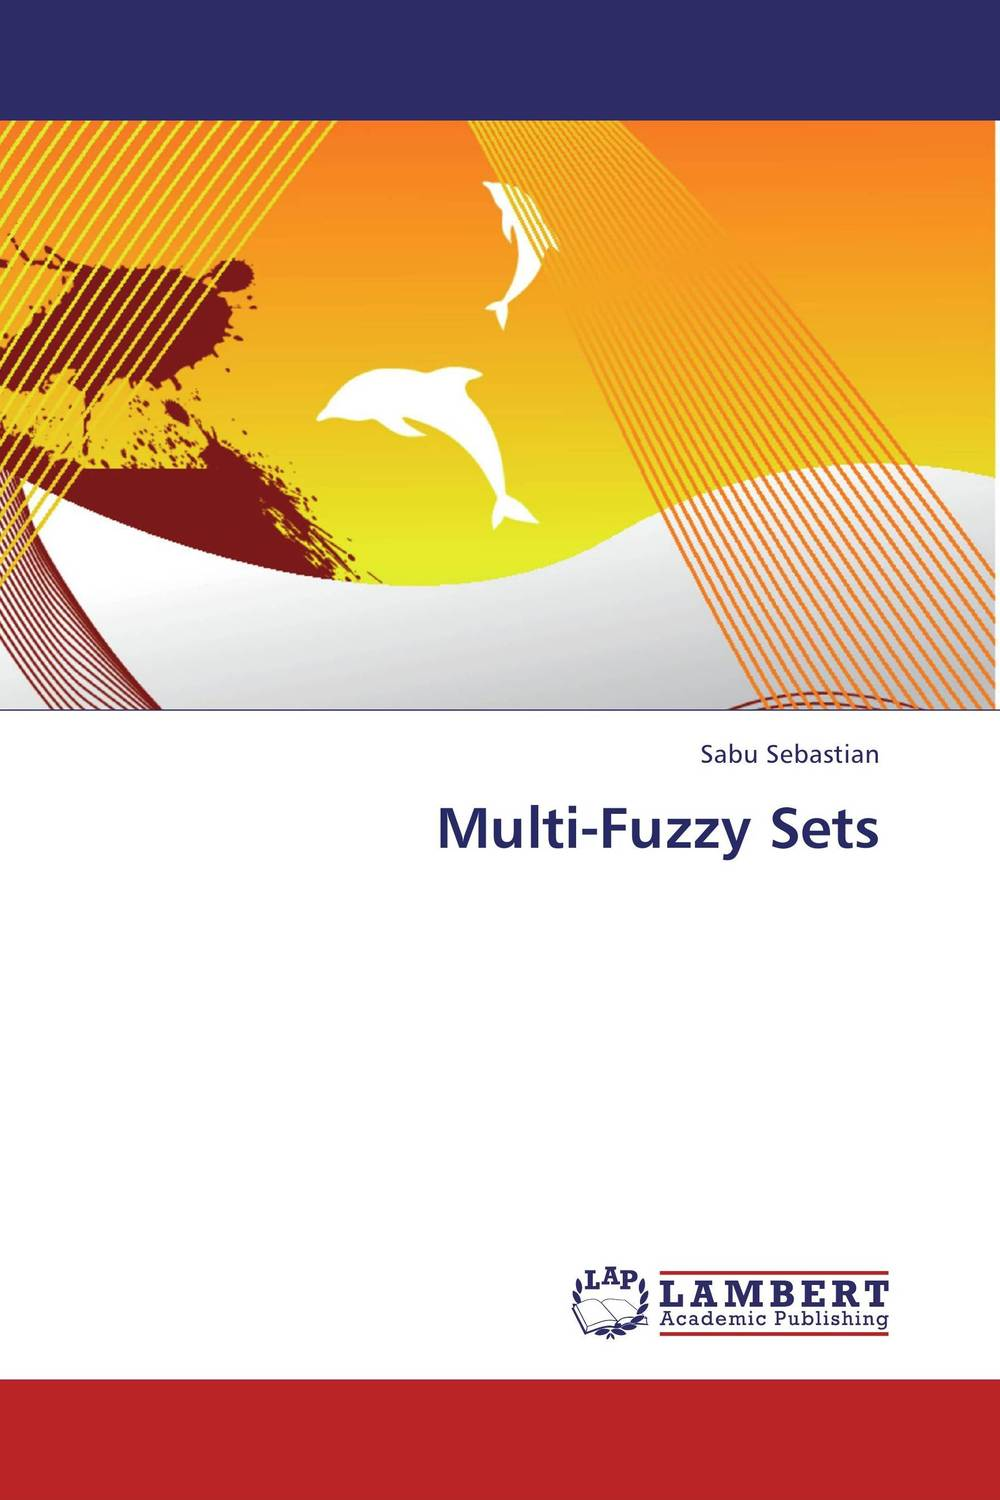 Multi-Fuzzy Sets